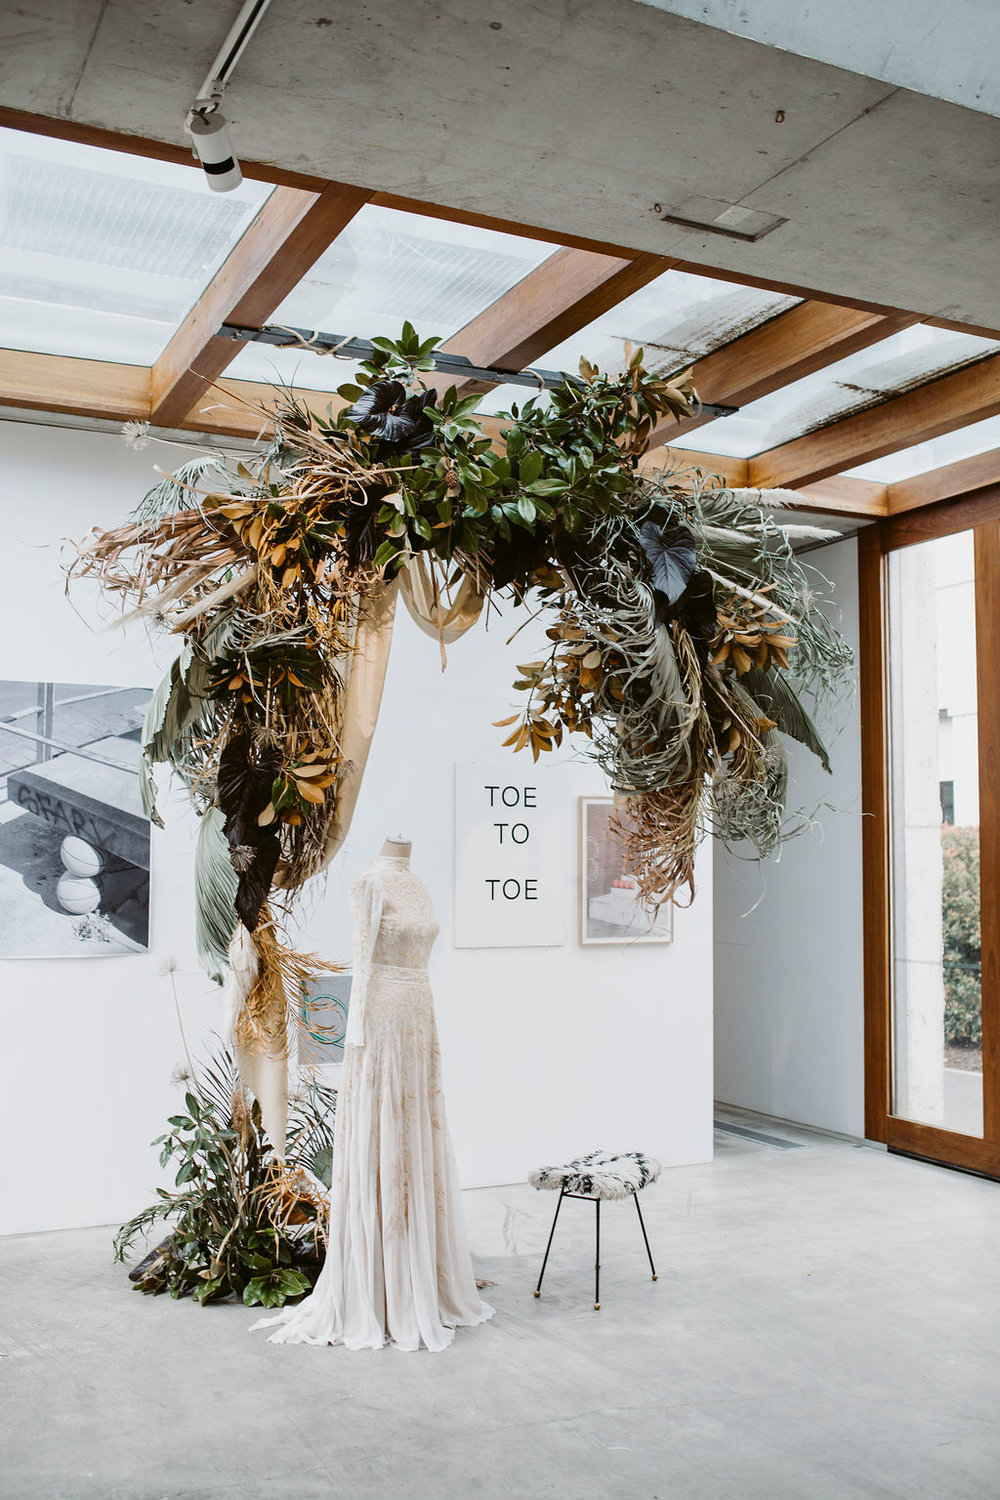 MOXOM AND WHITNEY   The dream weavers a.k.a. Moxom + Whitney were the creative visionaries behind the amazing foliage installations at our pop up recently at the Nishi Gallery, Canberra (as seen above). Let Lou Lou and her team loose on your wedding floral dreams and be prepared to loose your mind!